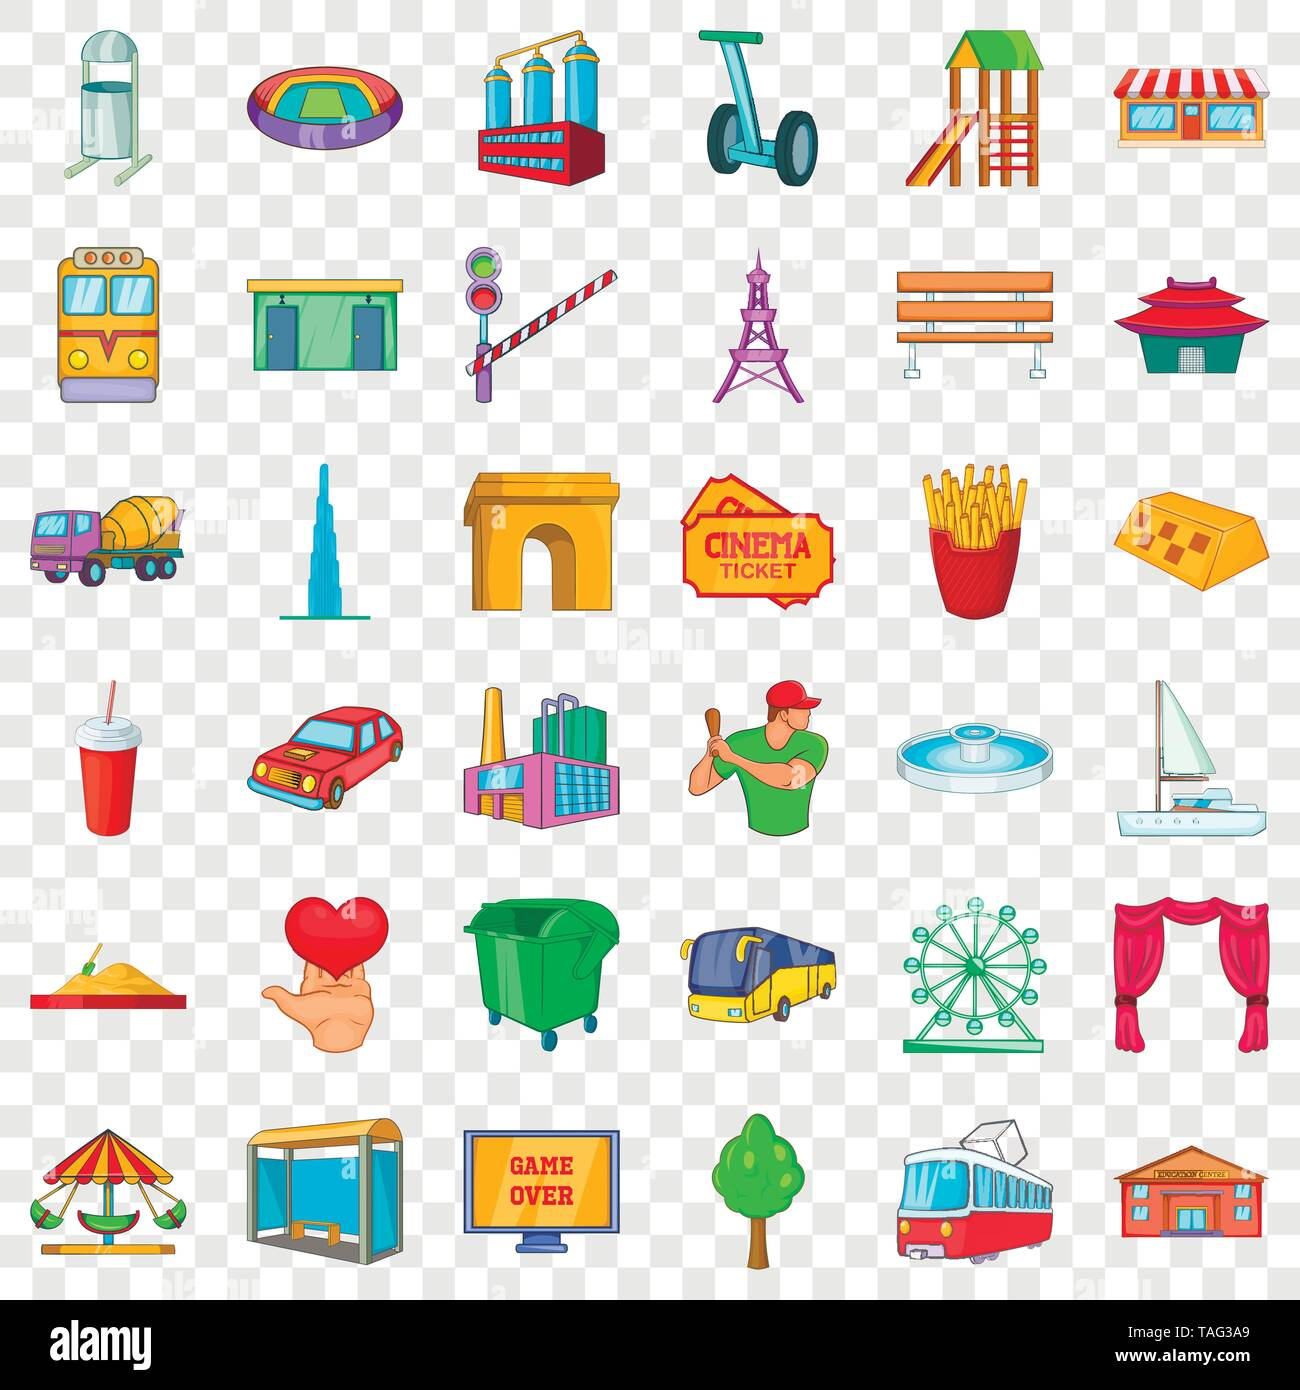 Life in town icons set, cartoon style - Stock Image